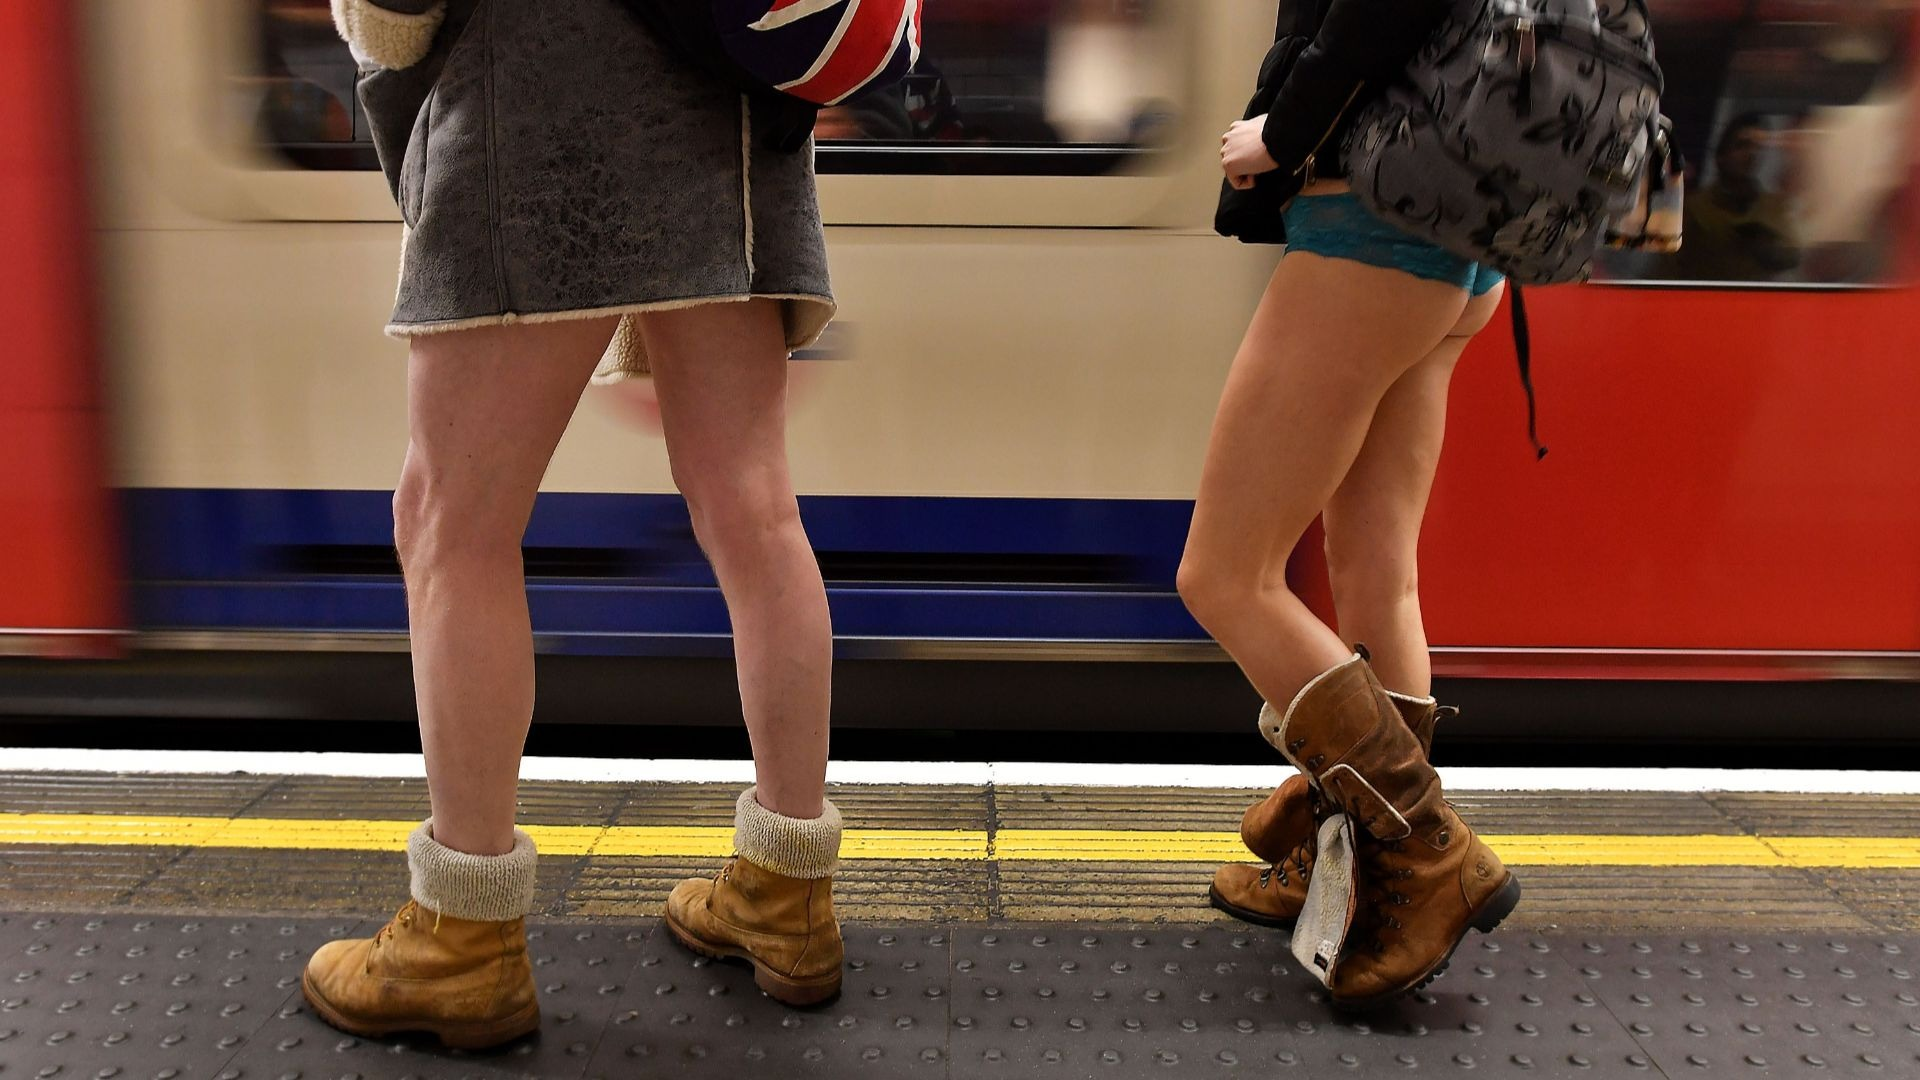 No trousers day on the London Underground.